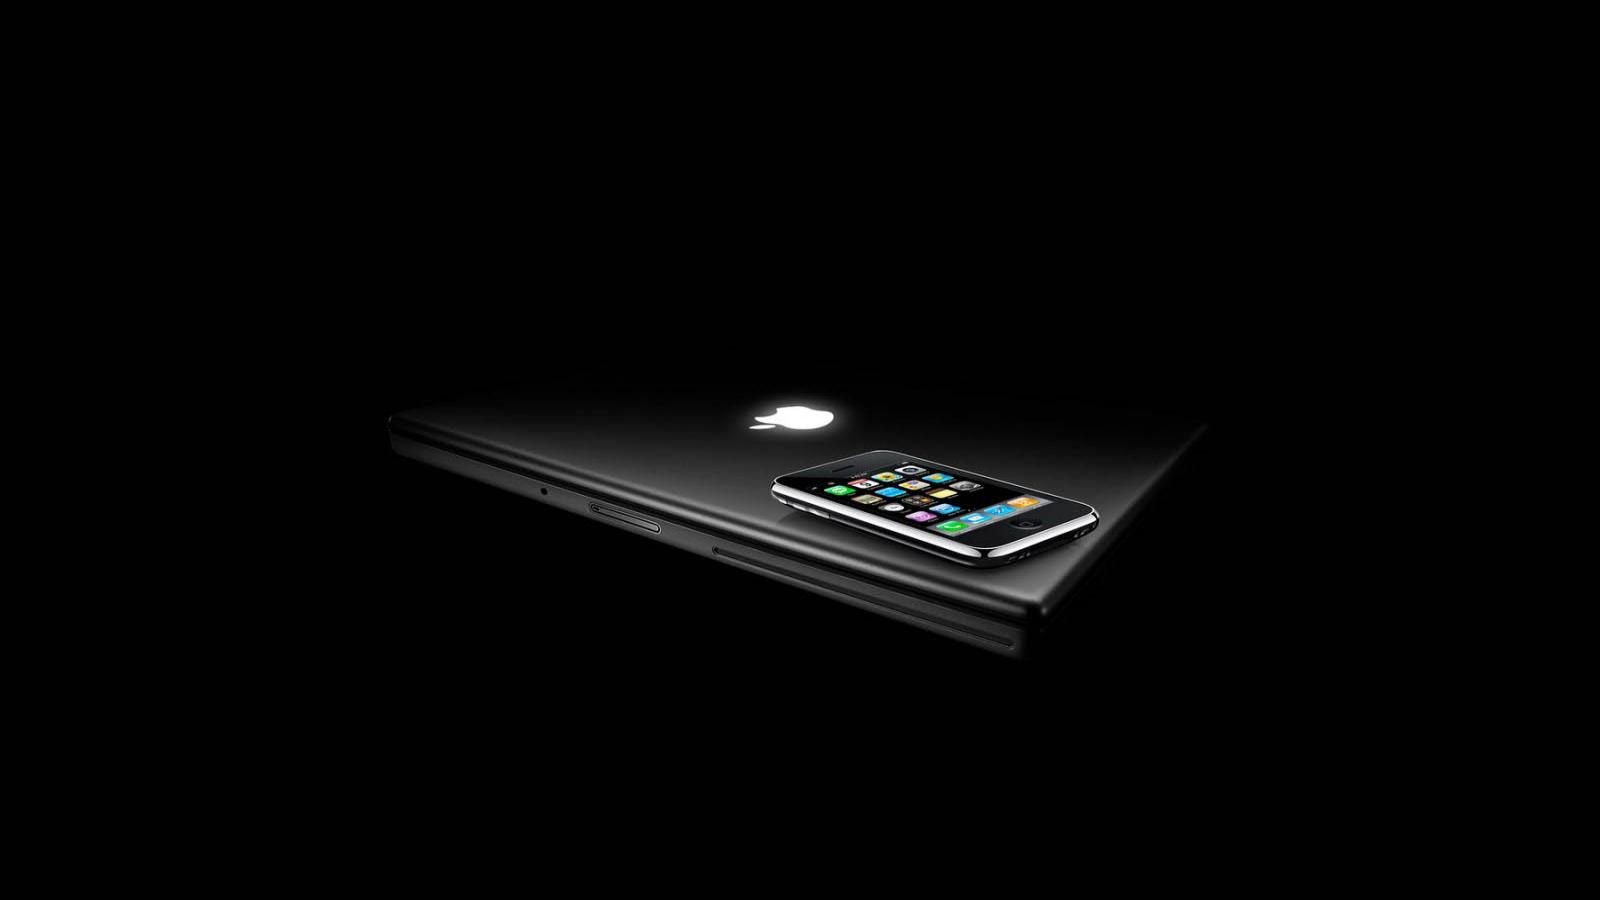 Apple Brand HD Wallpapers for all resolution HD 1600x900 Brand 1600x900